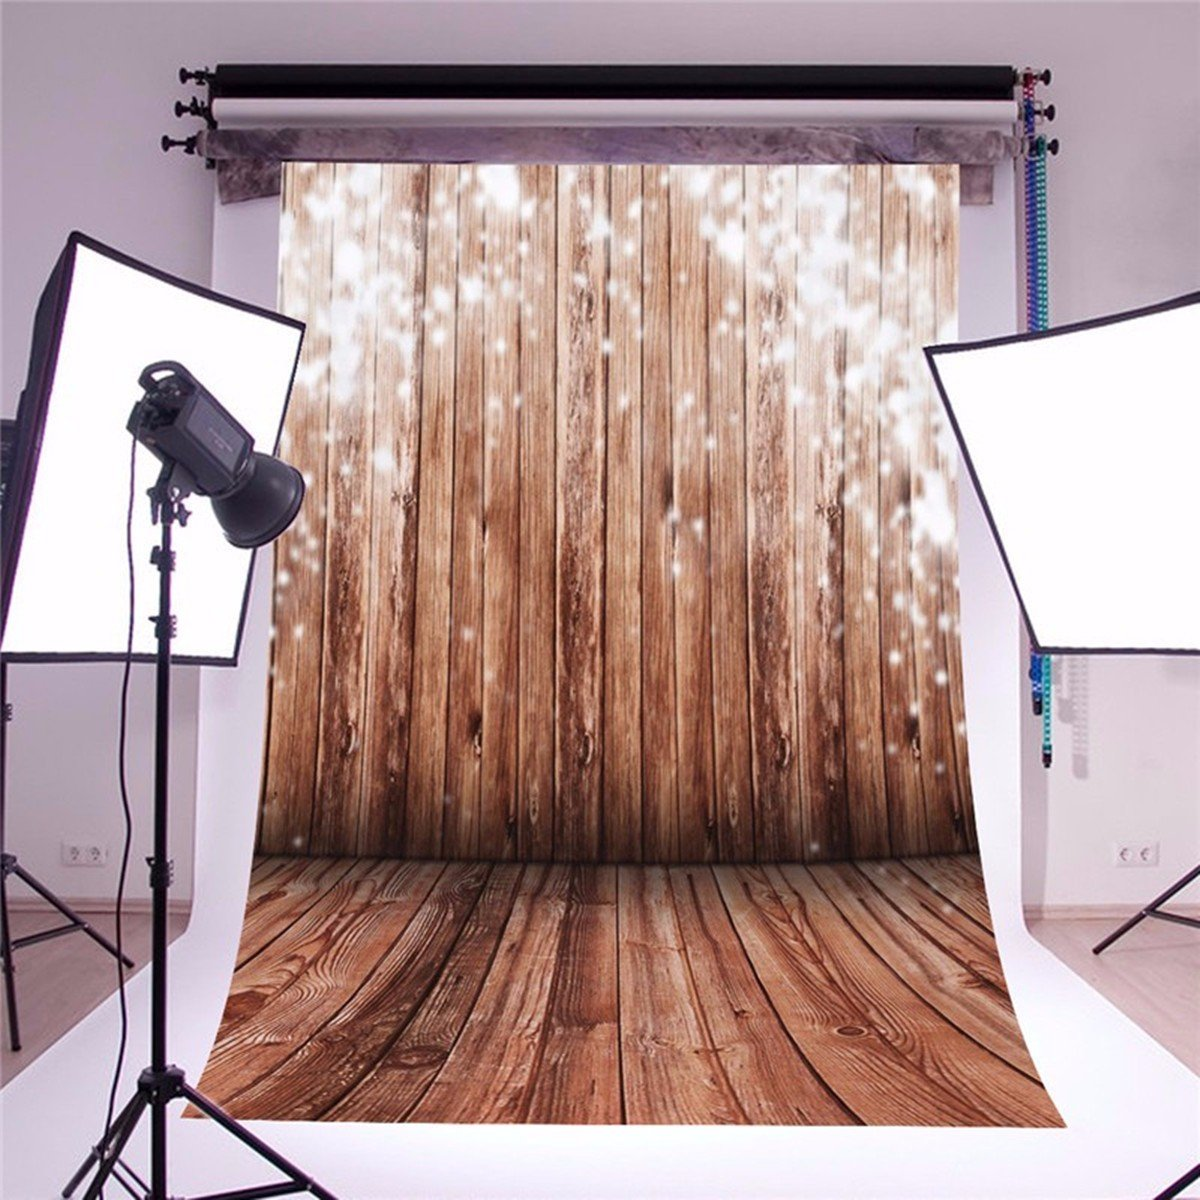 Amazon.com : Mohoo 5x7ft Silk Photography Background Nostalgia Wood Floor  Pattern Photography Collapsible Backdrop Studio Props (Updated Material) :  Camera ...